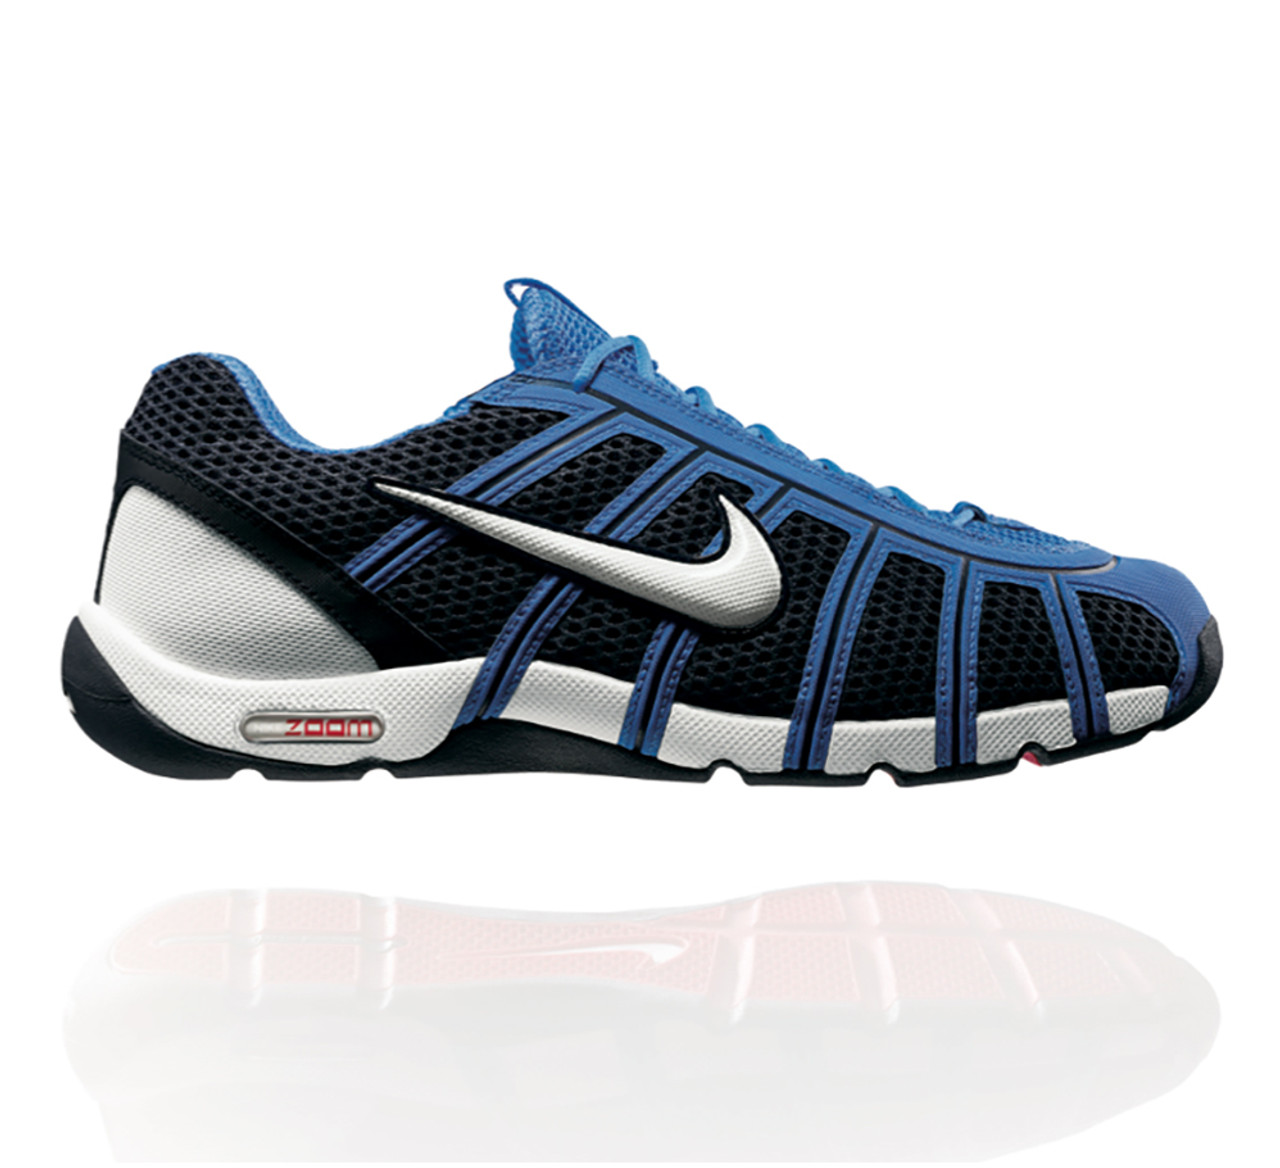 huge sale new lifestyle multiple colors Nike Air Zoom Fencer Obsidian / White / Light Blue